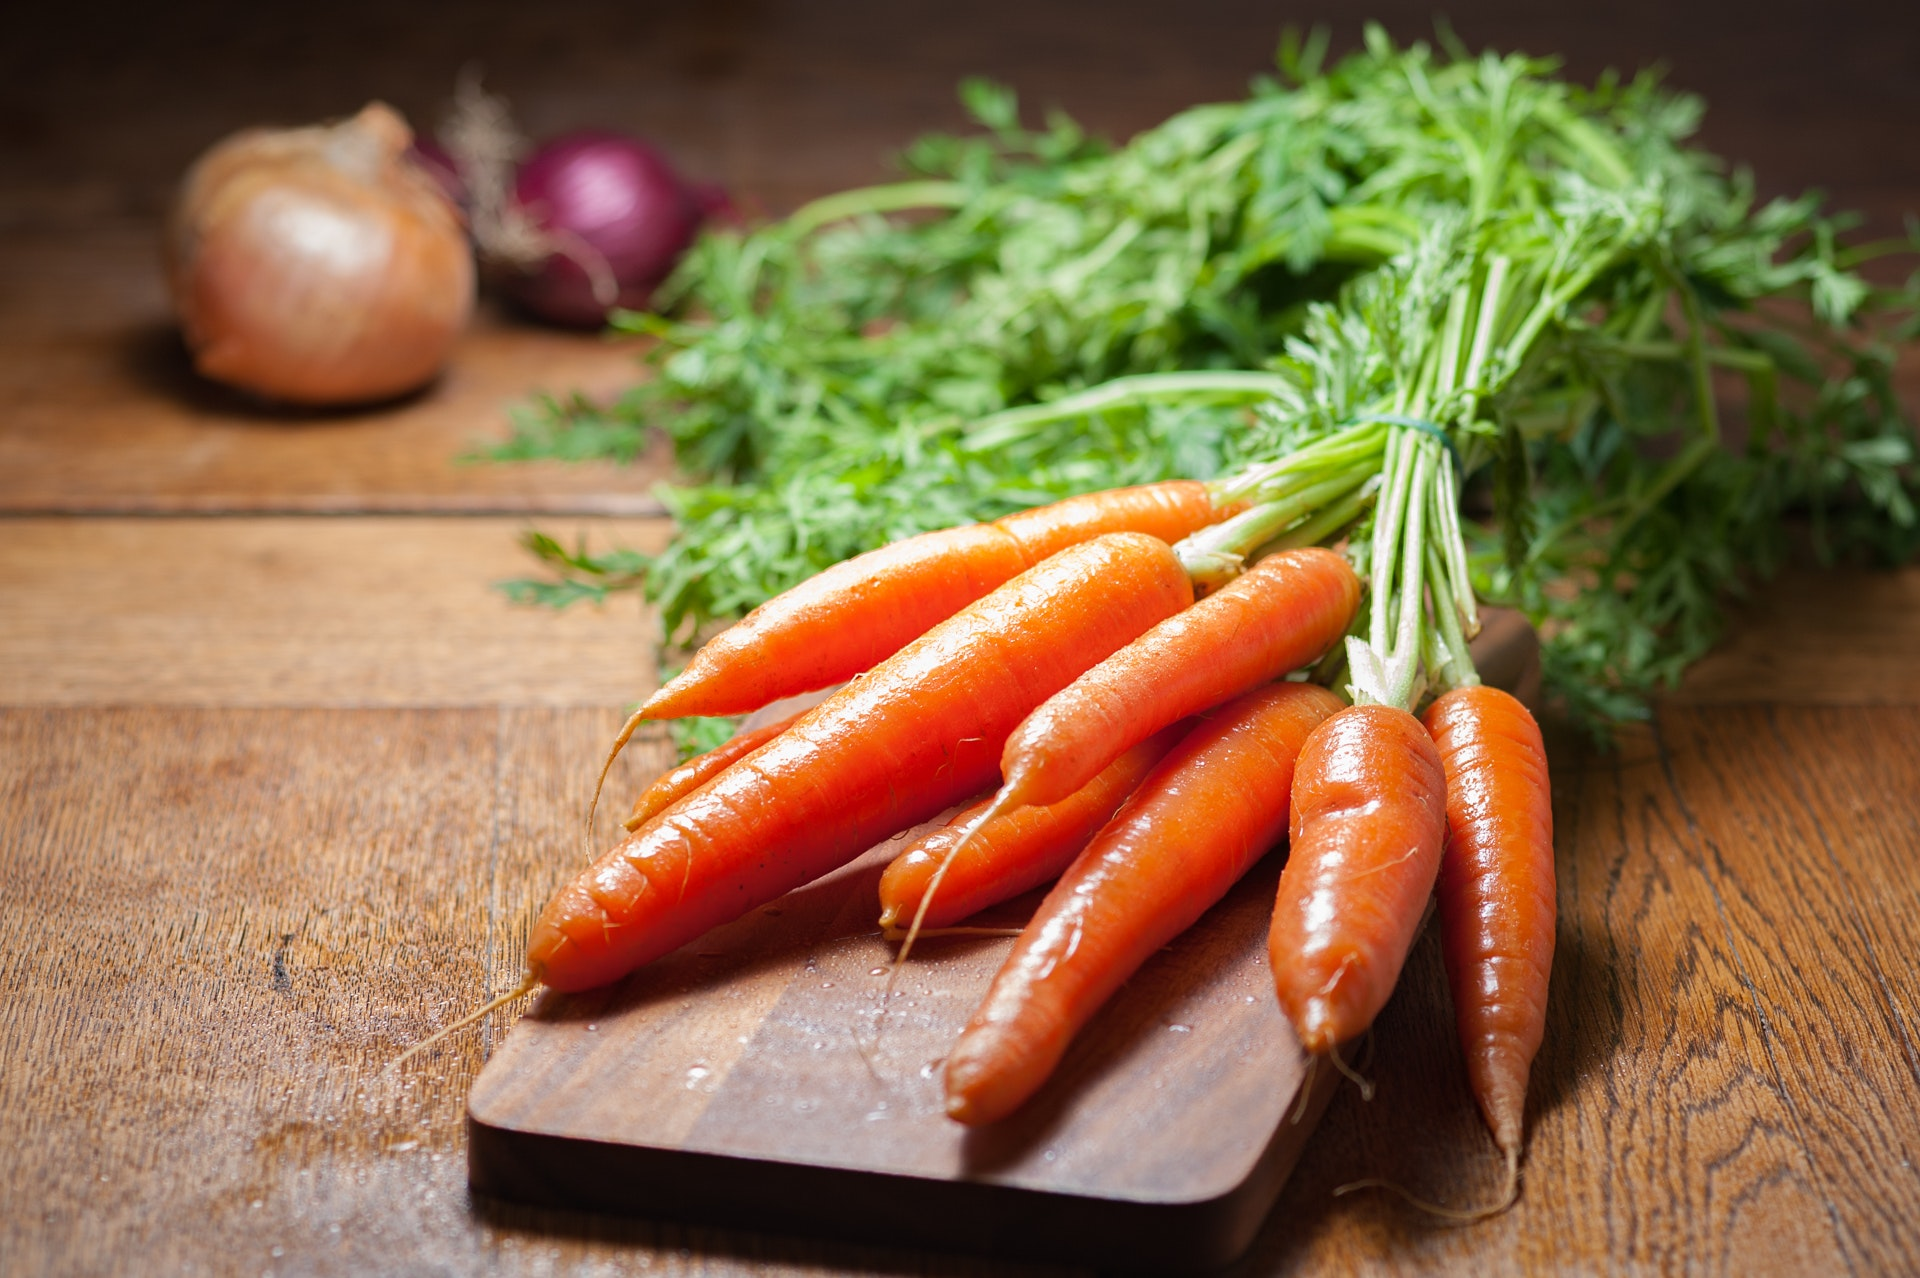 carrots-cooking-food-65174.jpg